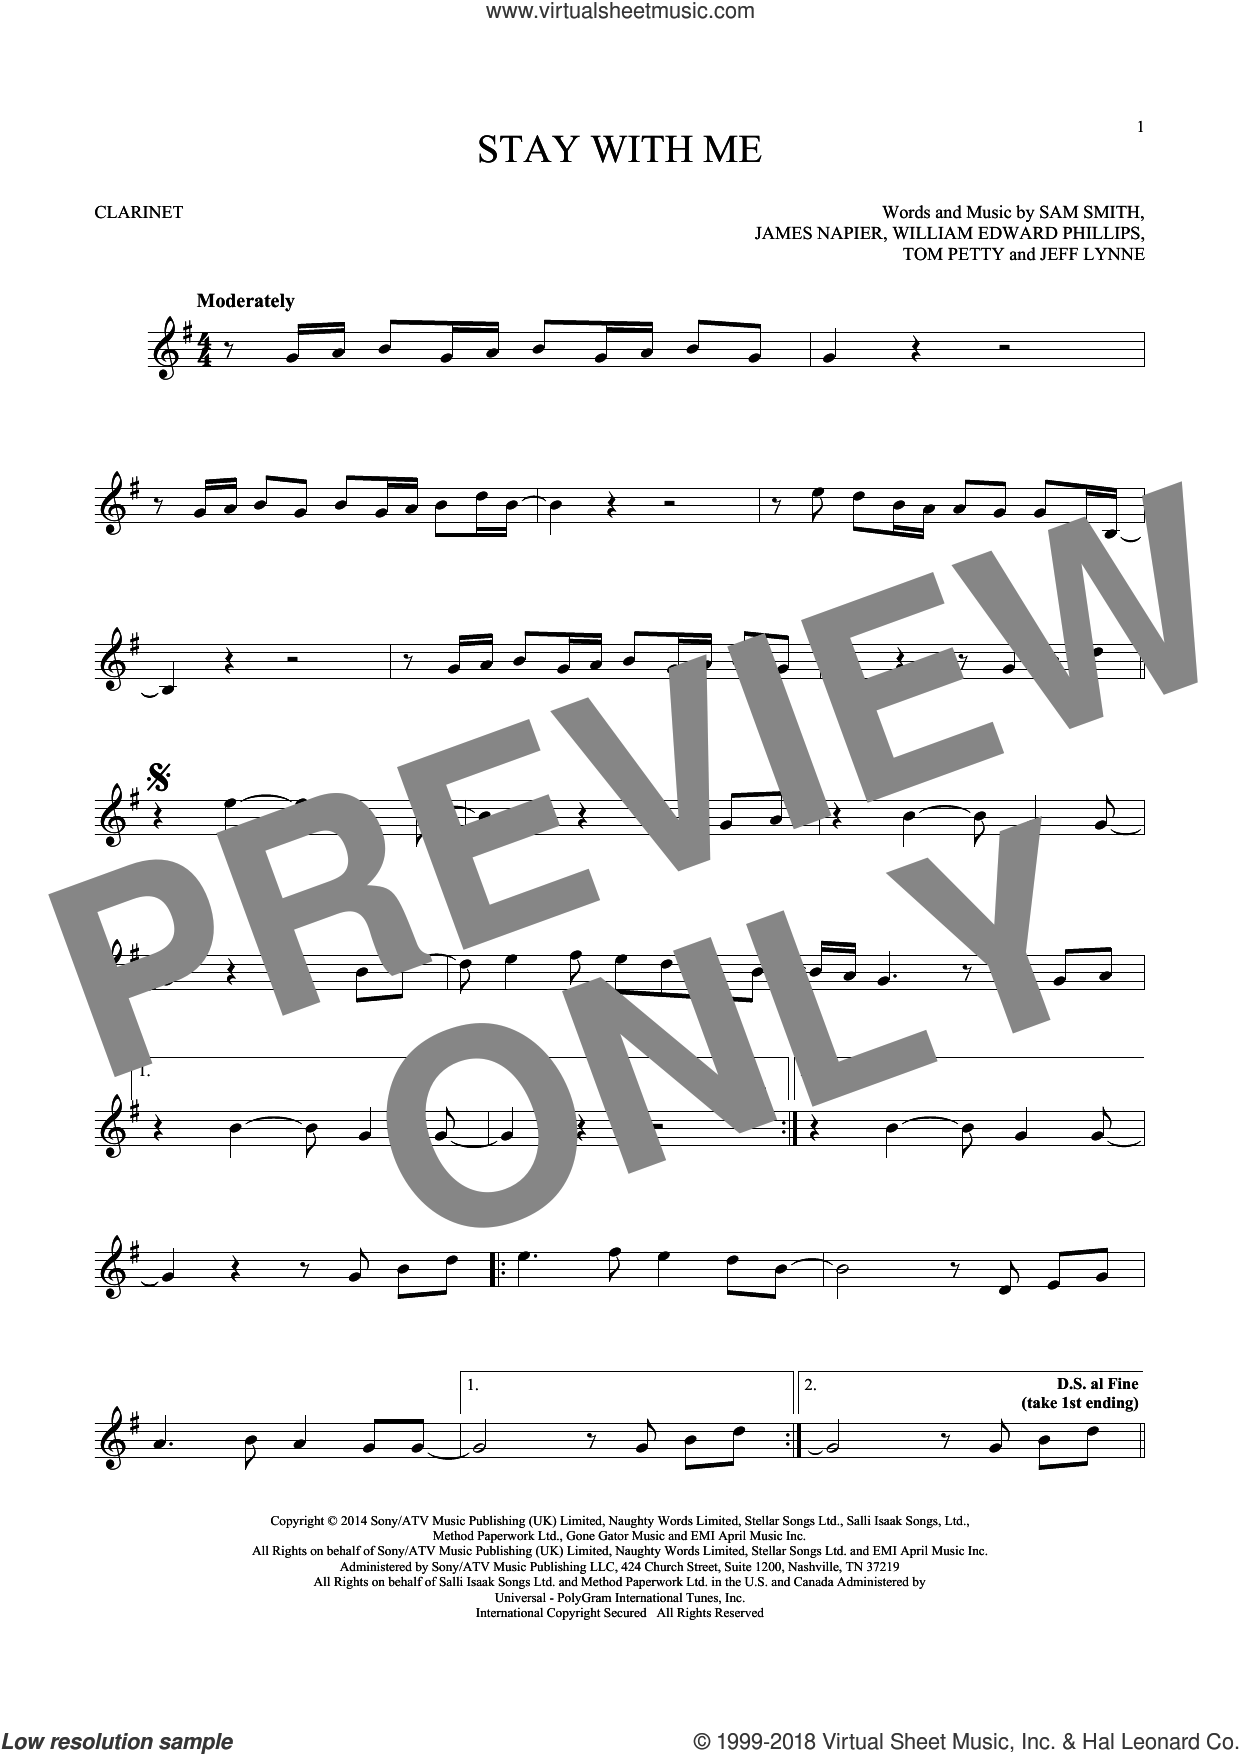 Stay With Me sheet music for clarinet solo by Sam Smith, James Napier, Jeff Lynne, Tom Petty and William Edward Phillips, intermediate skill level